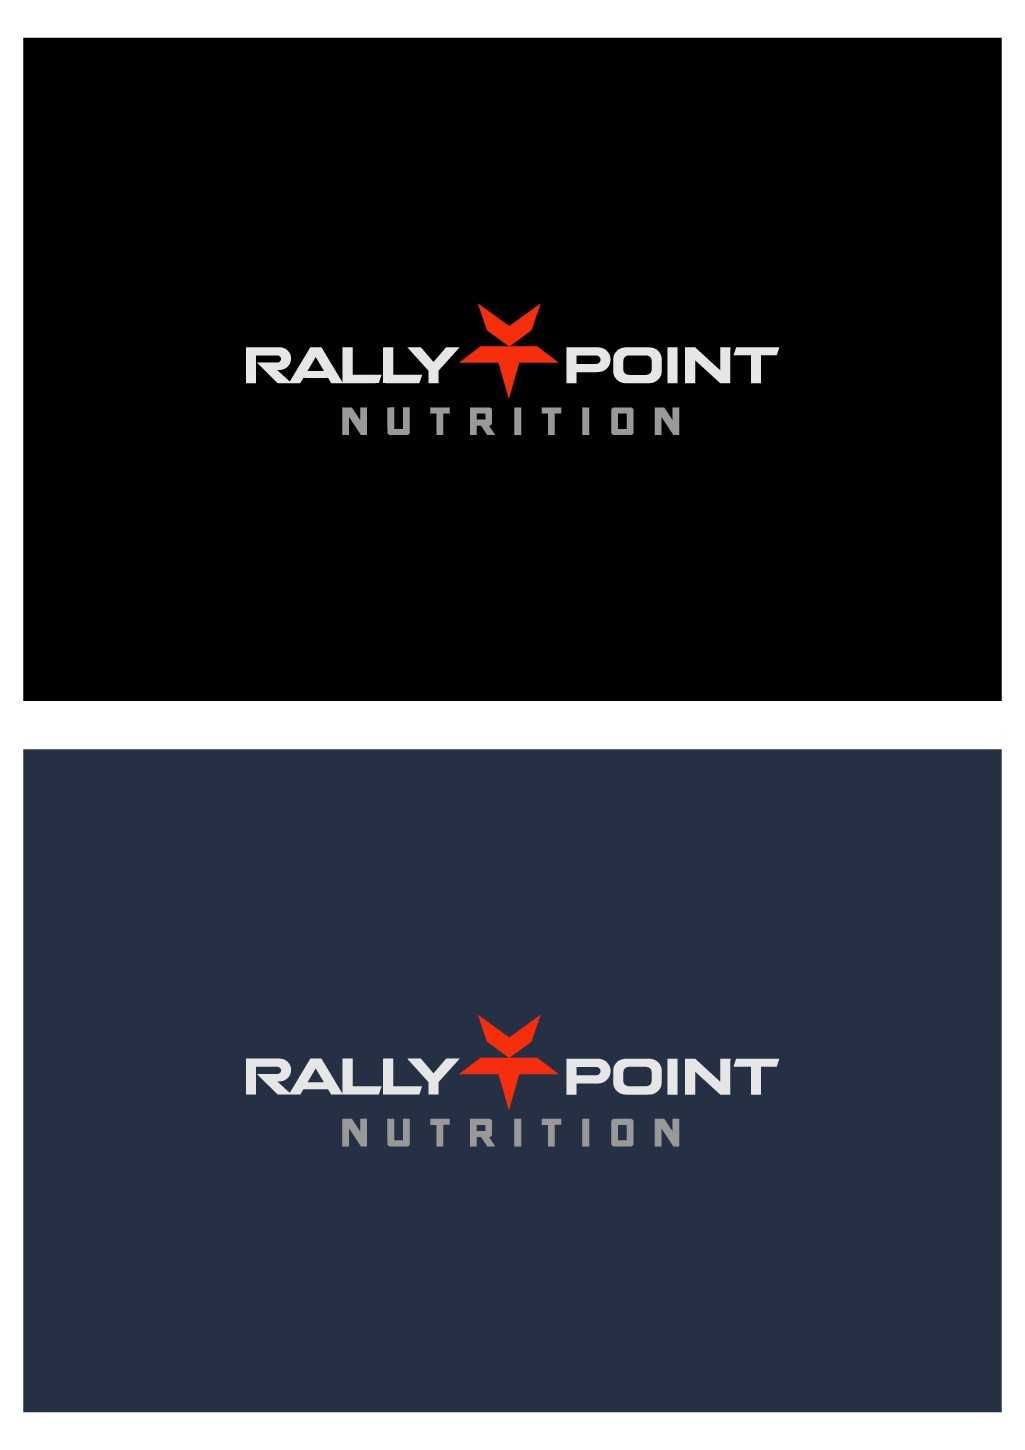 Rally Point Nutrition needs a powerful new shirt design